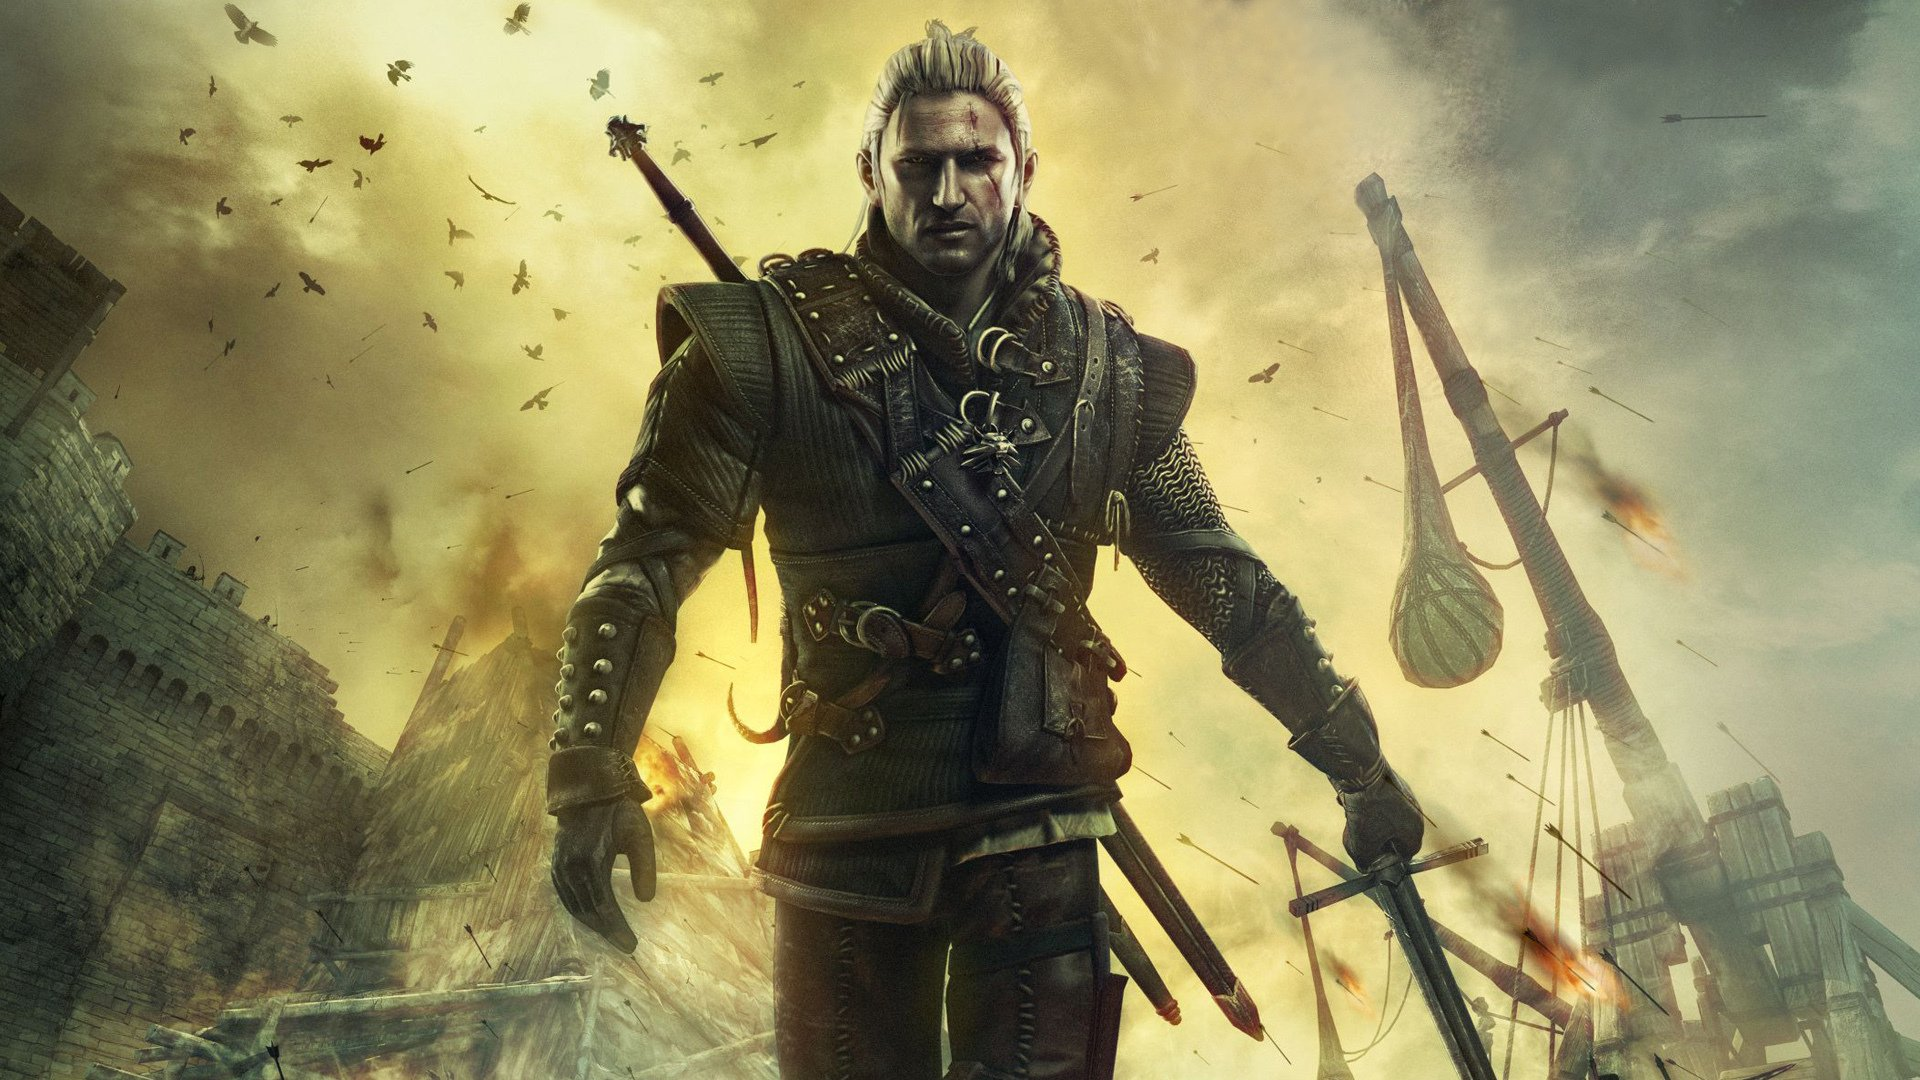 The Witcher 2 Assassins Of Kings HD Wallpaper Background Image 1920x1080